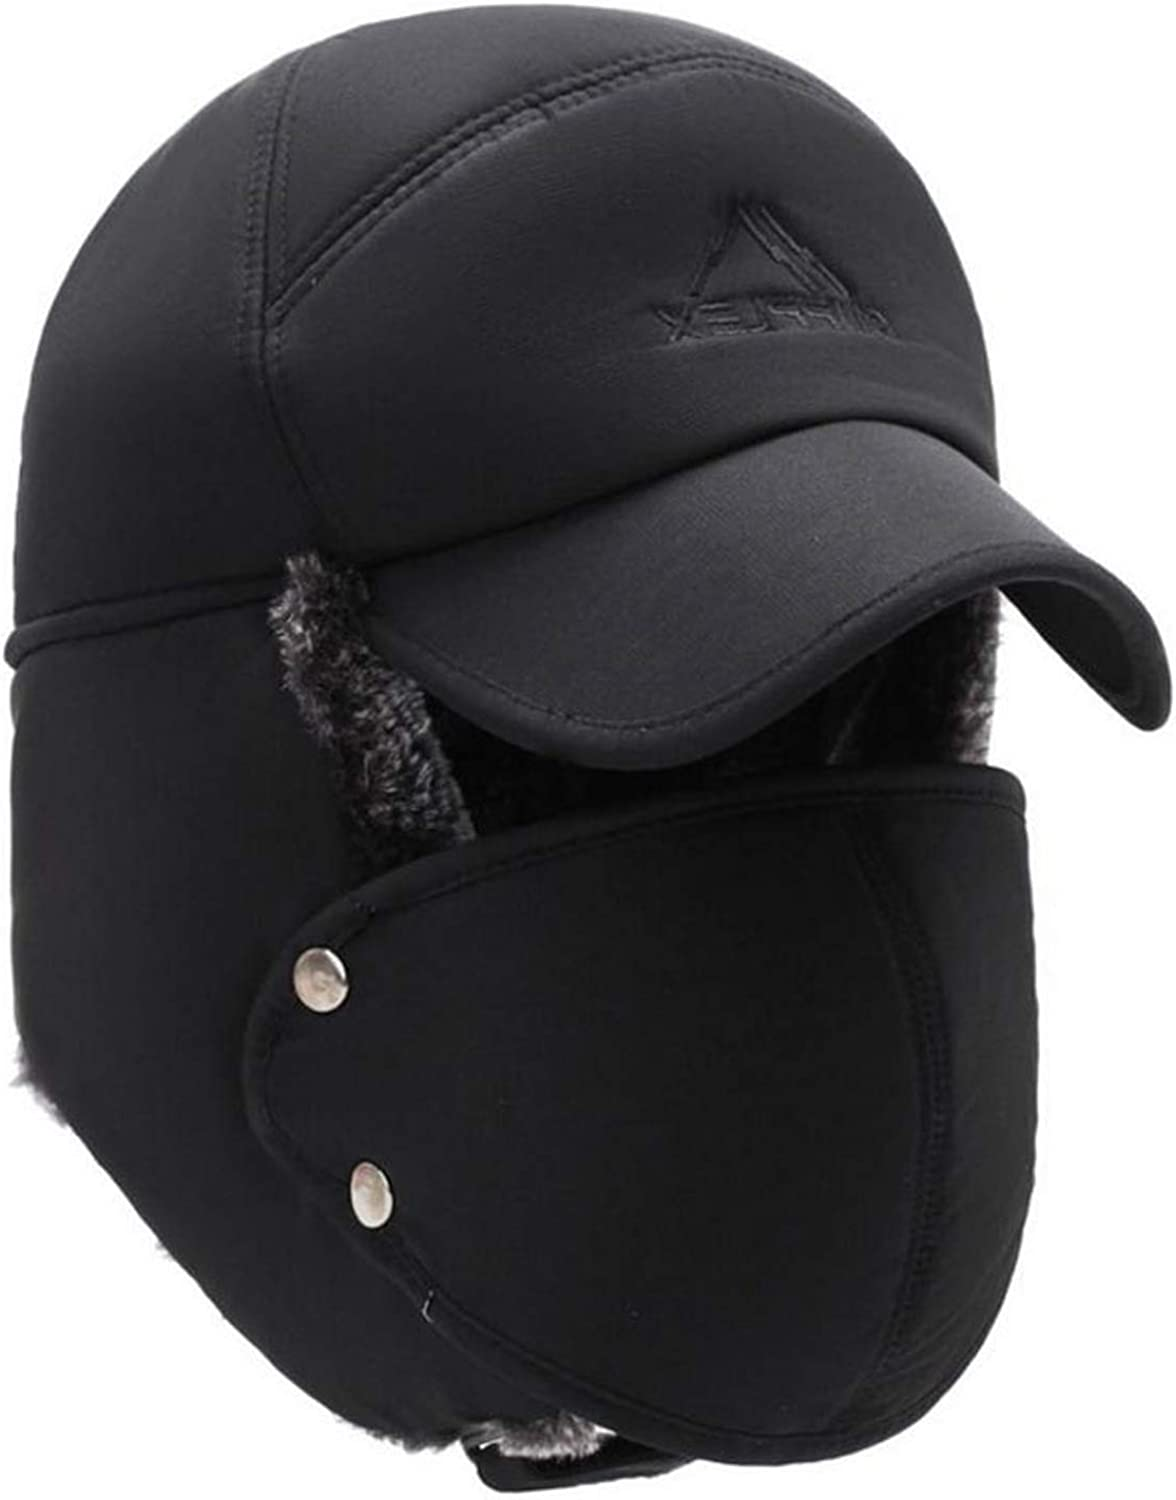 Mens Winter Hats Ear Flaps Bomber Hats with Brim and Face Mask Warm Hat for Men Waterproof Ski Cap